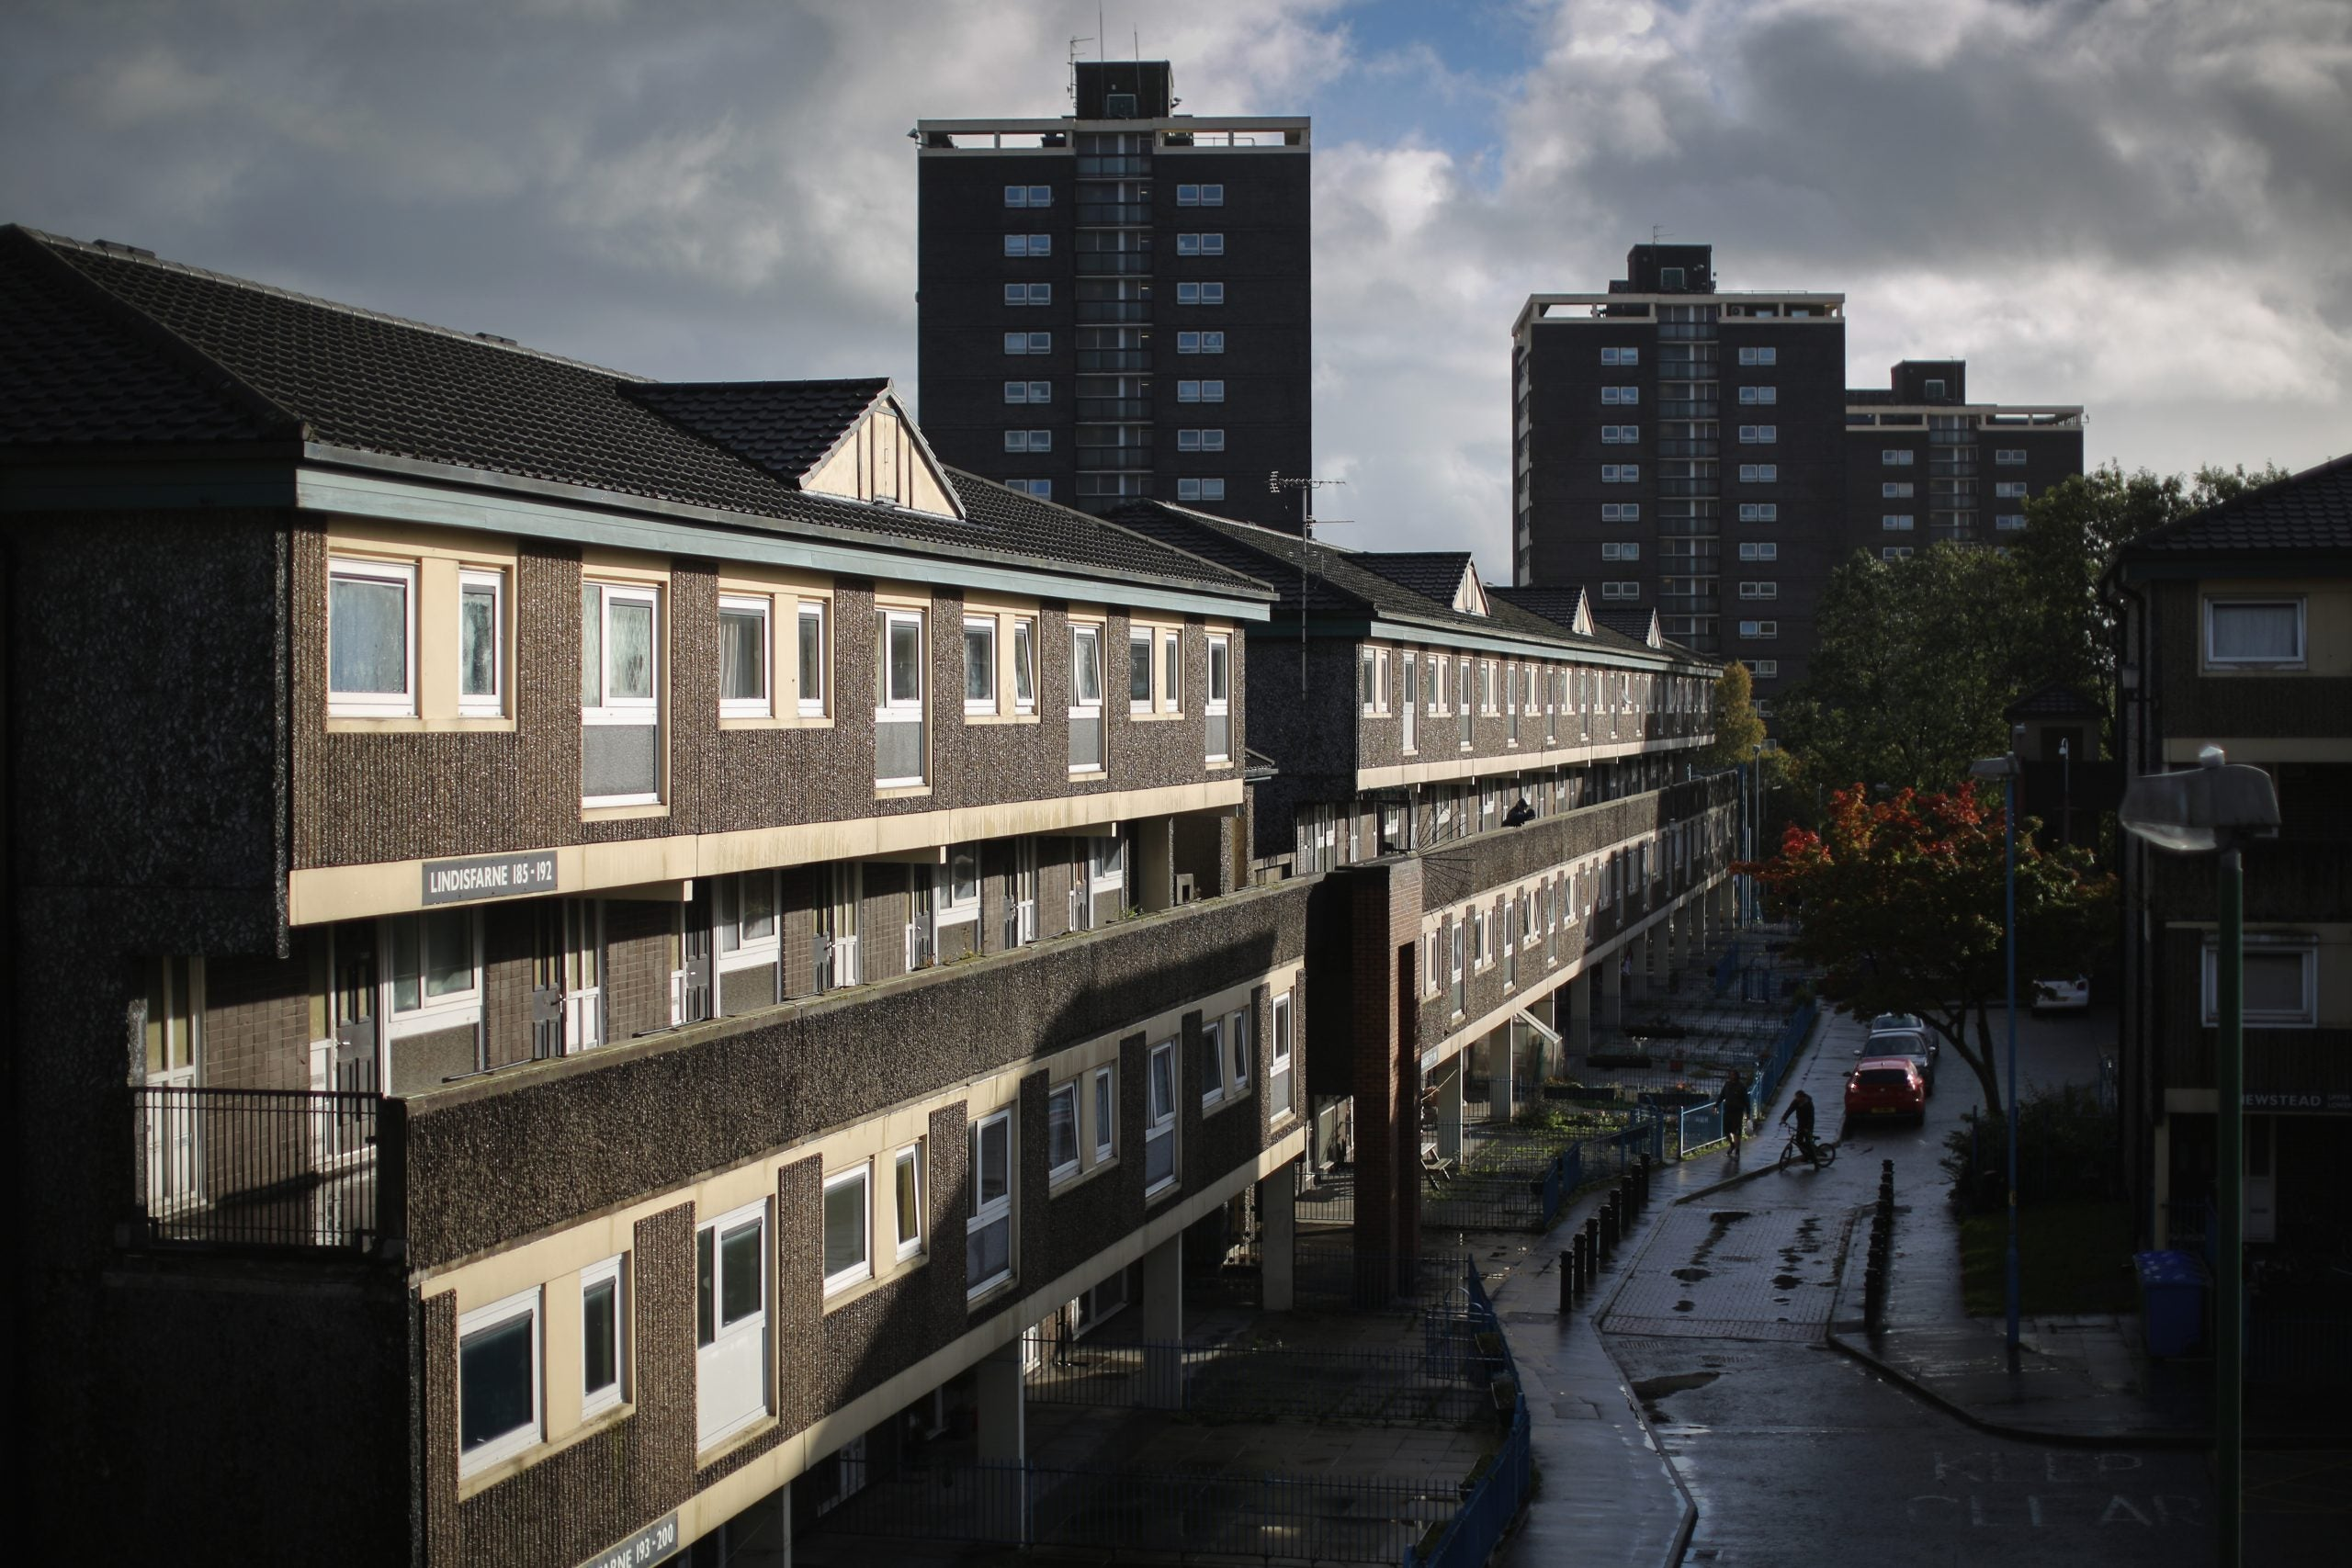 A third of adults in Britain live in unsafe and insecure housing